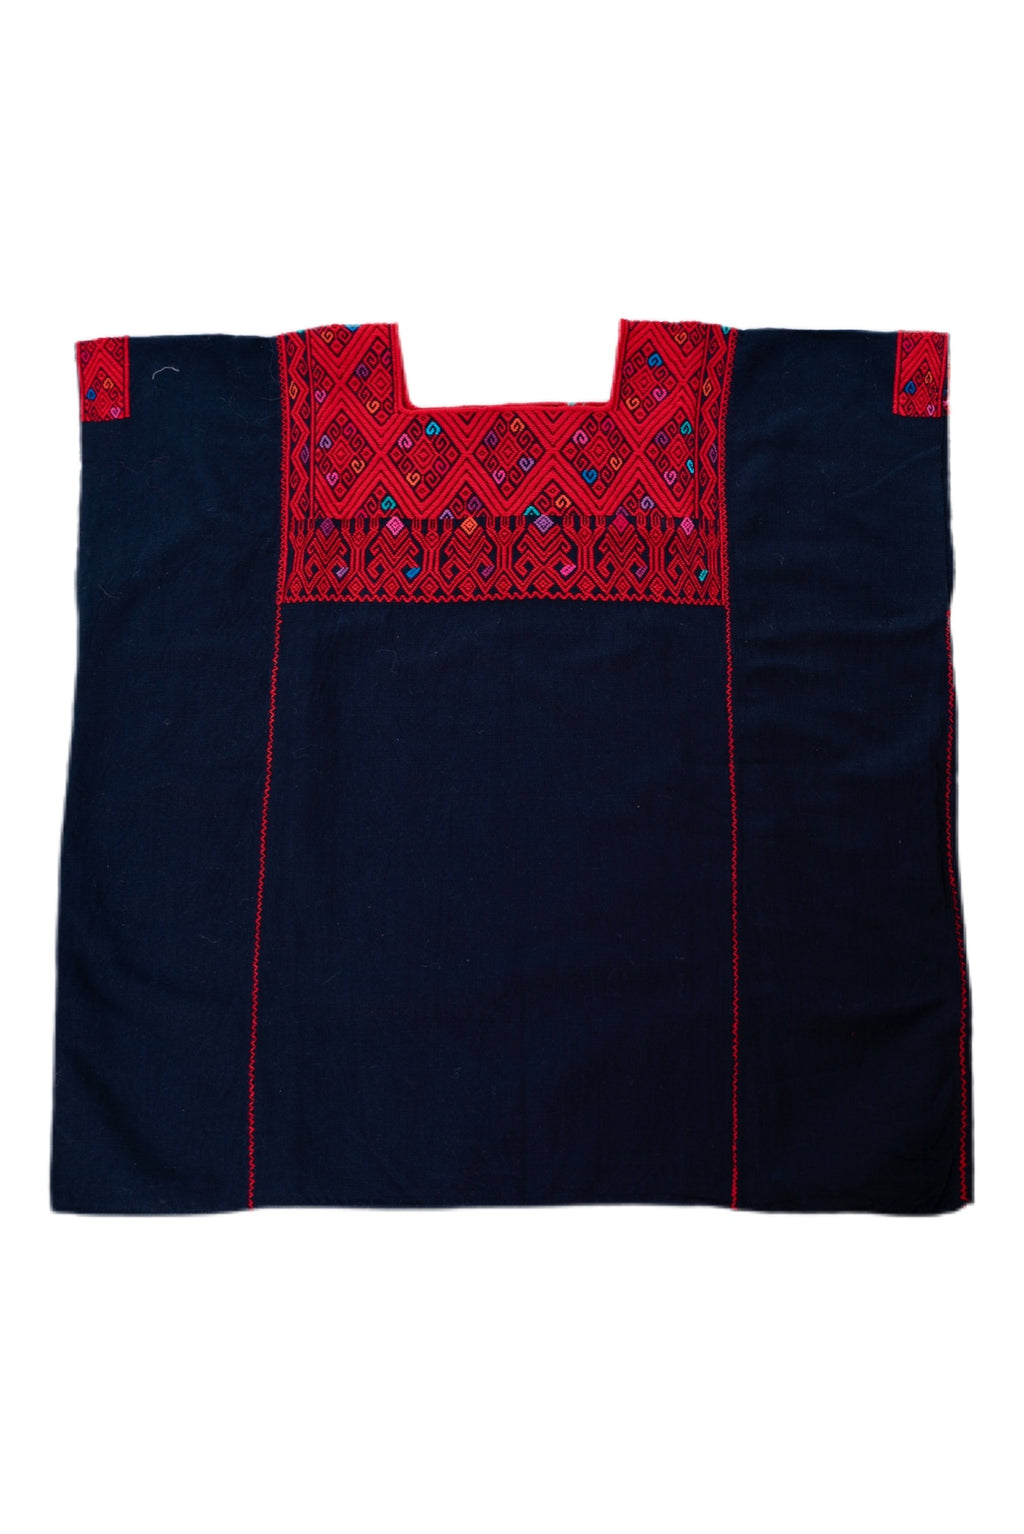 San Andres Mexican Blouse -Black and Red